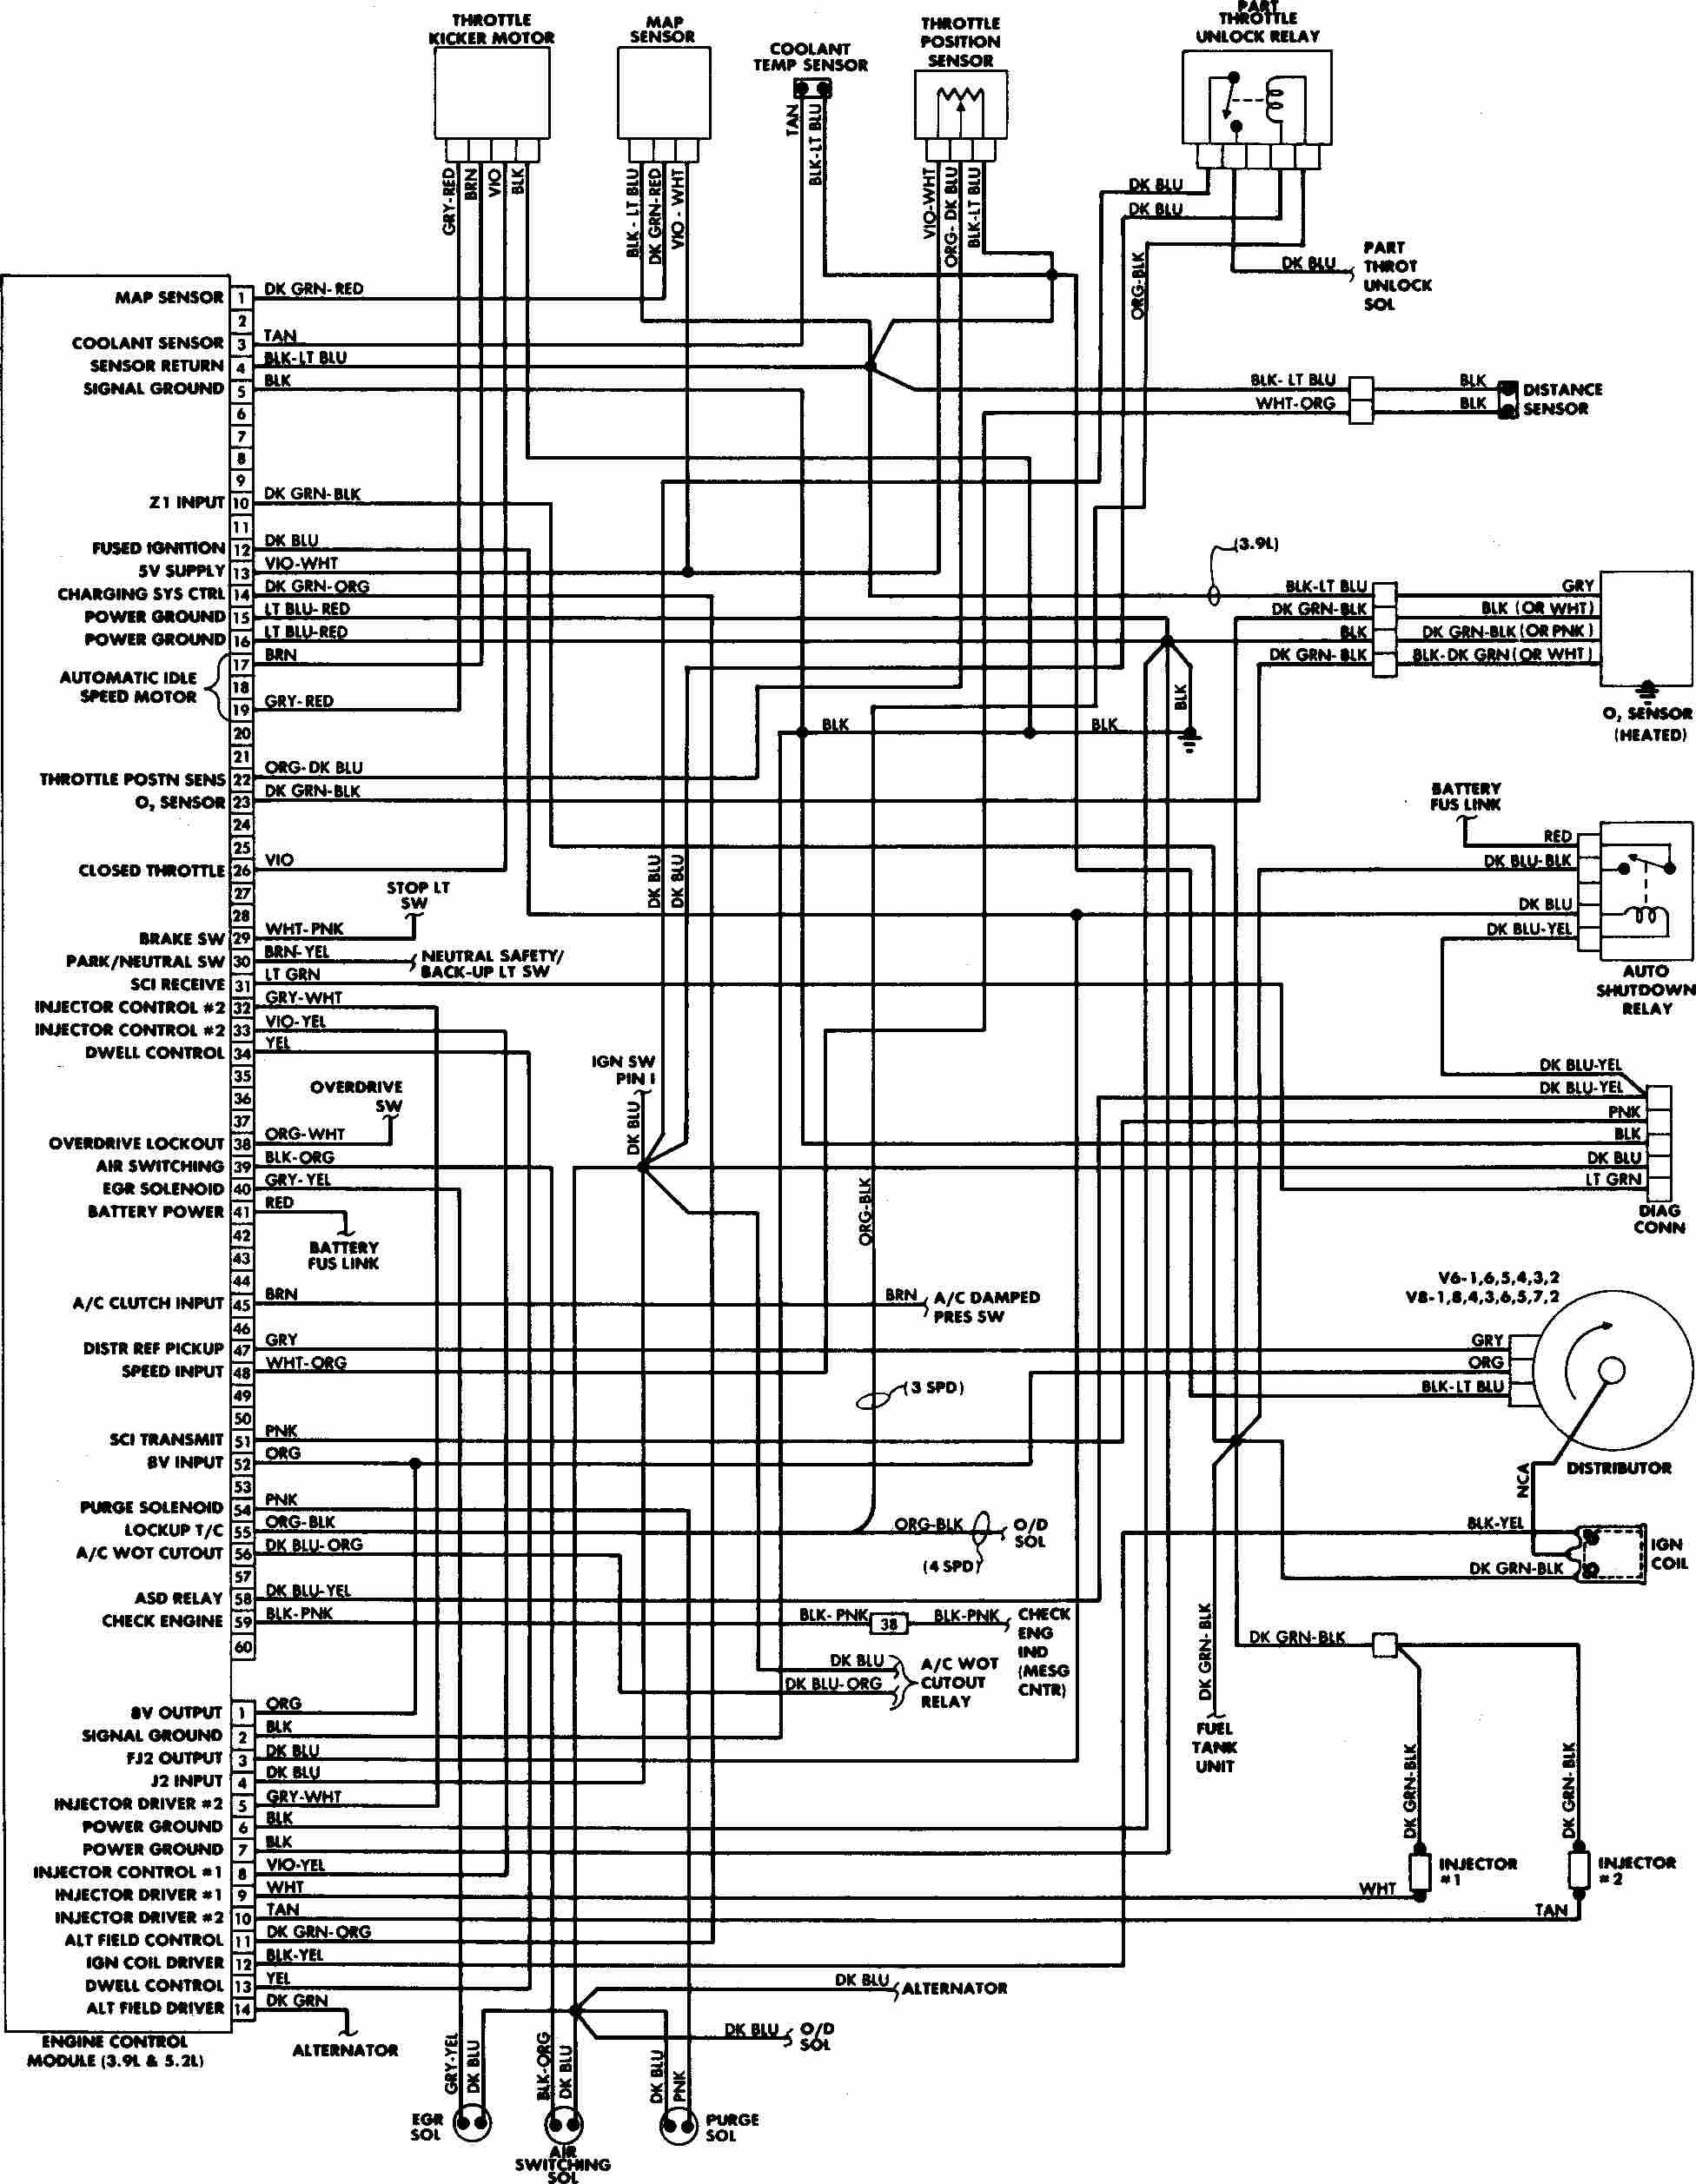 79 Dodge Truck Wiring Diagram 2003 Kenworth W900 Fuse Panel Diagram Diagramford 2014ok Jeanjaures37 Fr